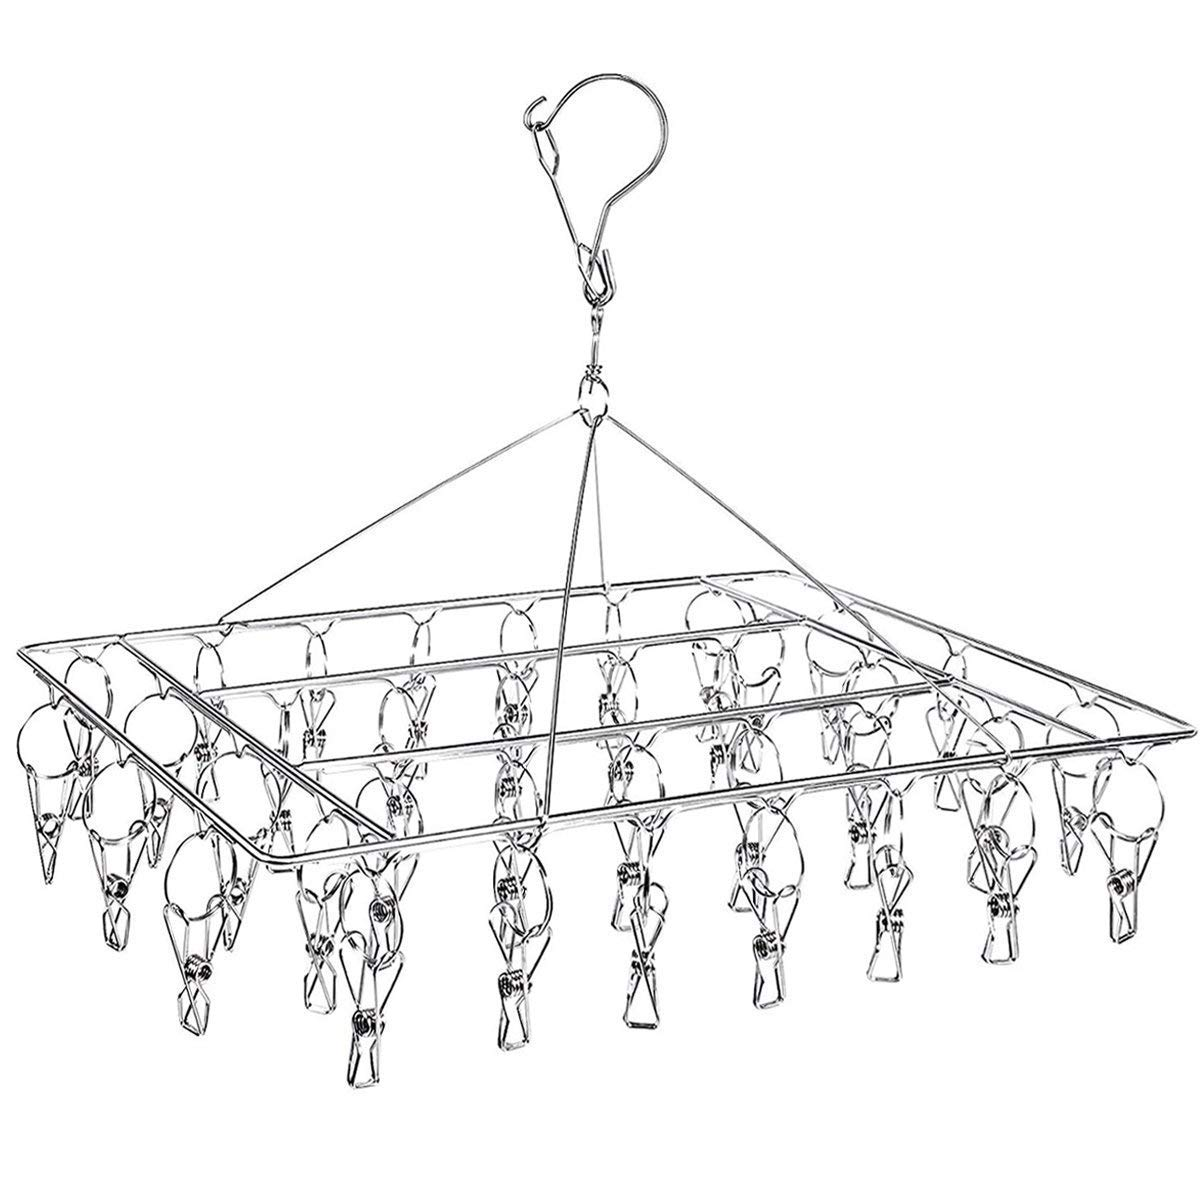 DUOFIRE Stainless Steel Clothes Drying Racks Laundry Drip Hanger Laundry Clothesline Hanging Rack Set of 36 Metal Clothespins Rectangle for Drying Clothes, Towels, Underwear, Lingerie, Socks (2 PACKS)